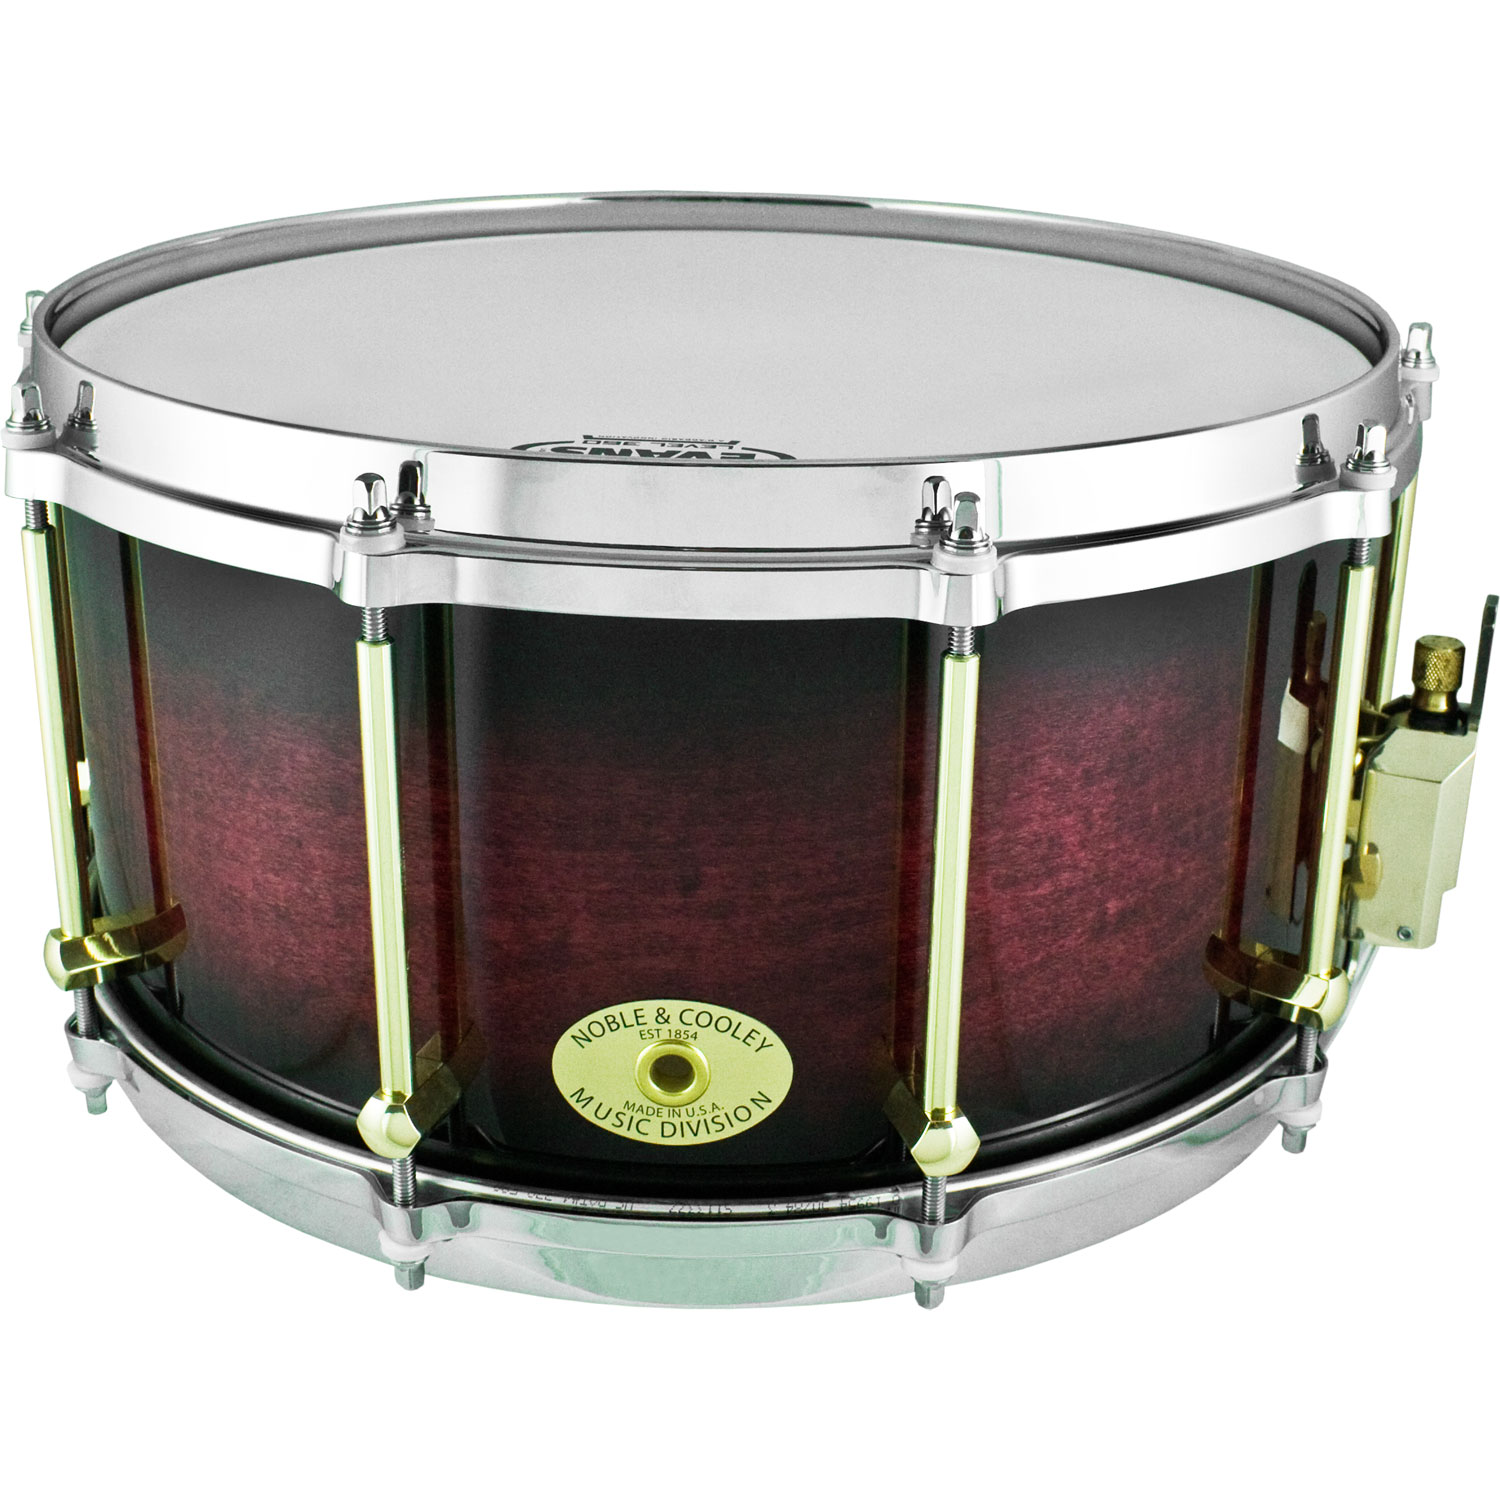 "Noble & Cooley 7"" x 14"" Classic Solid Shell Maple Snare Drum in Black Cherry Burst Gloss"